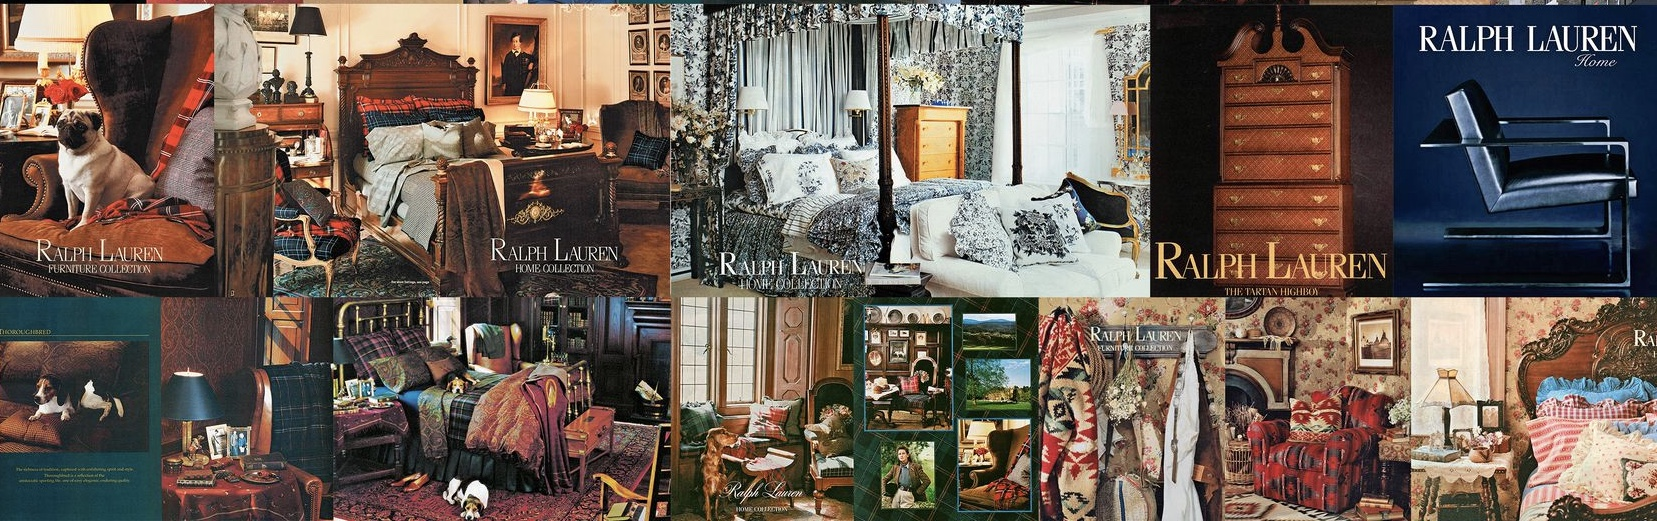 Ralph Lauren his Life RL50 Home Interiors forever Chic by Meg